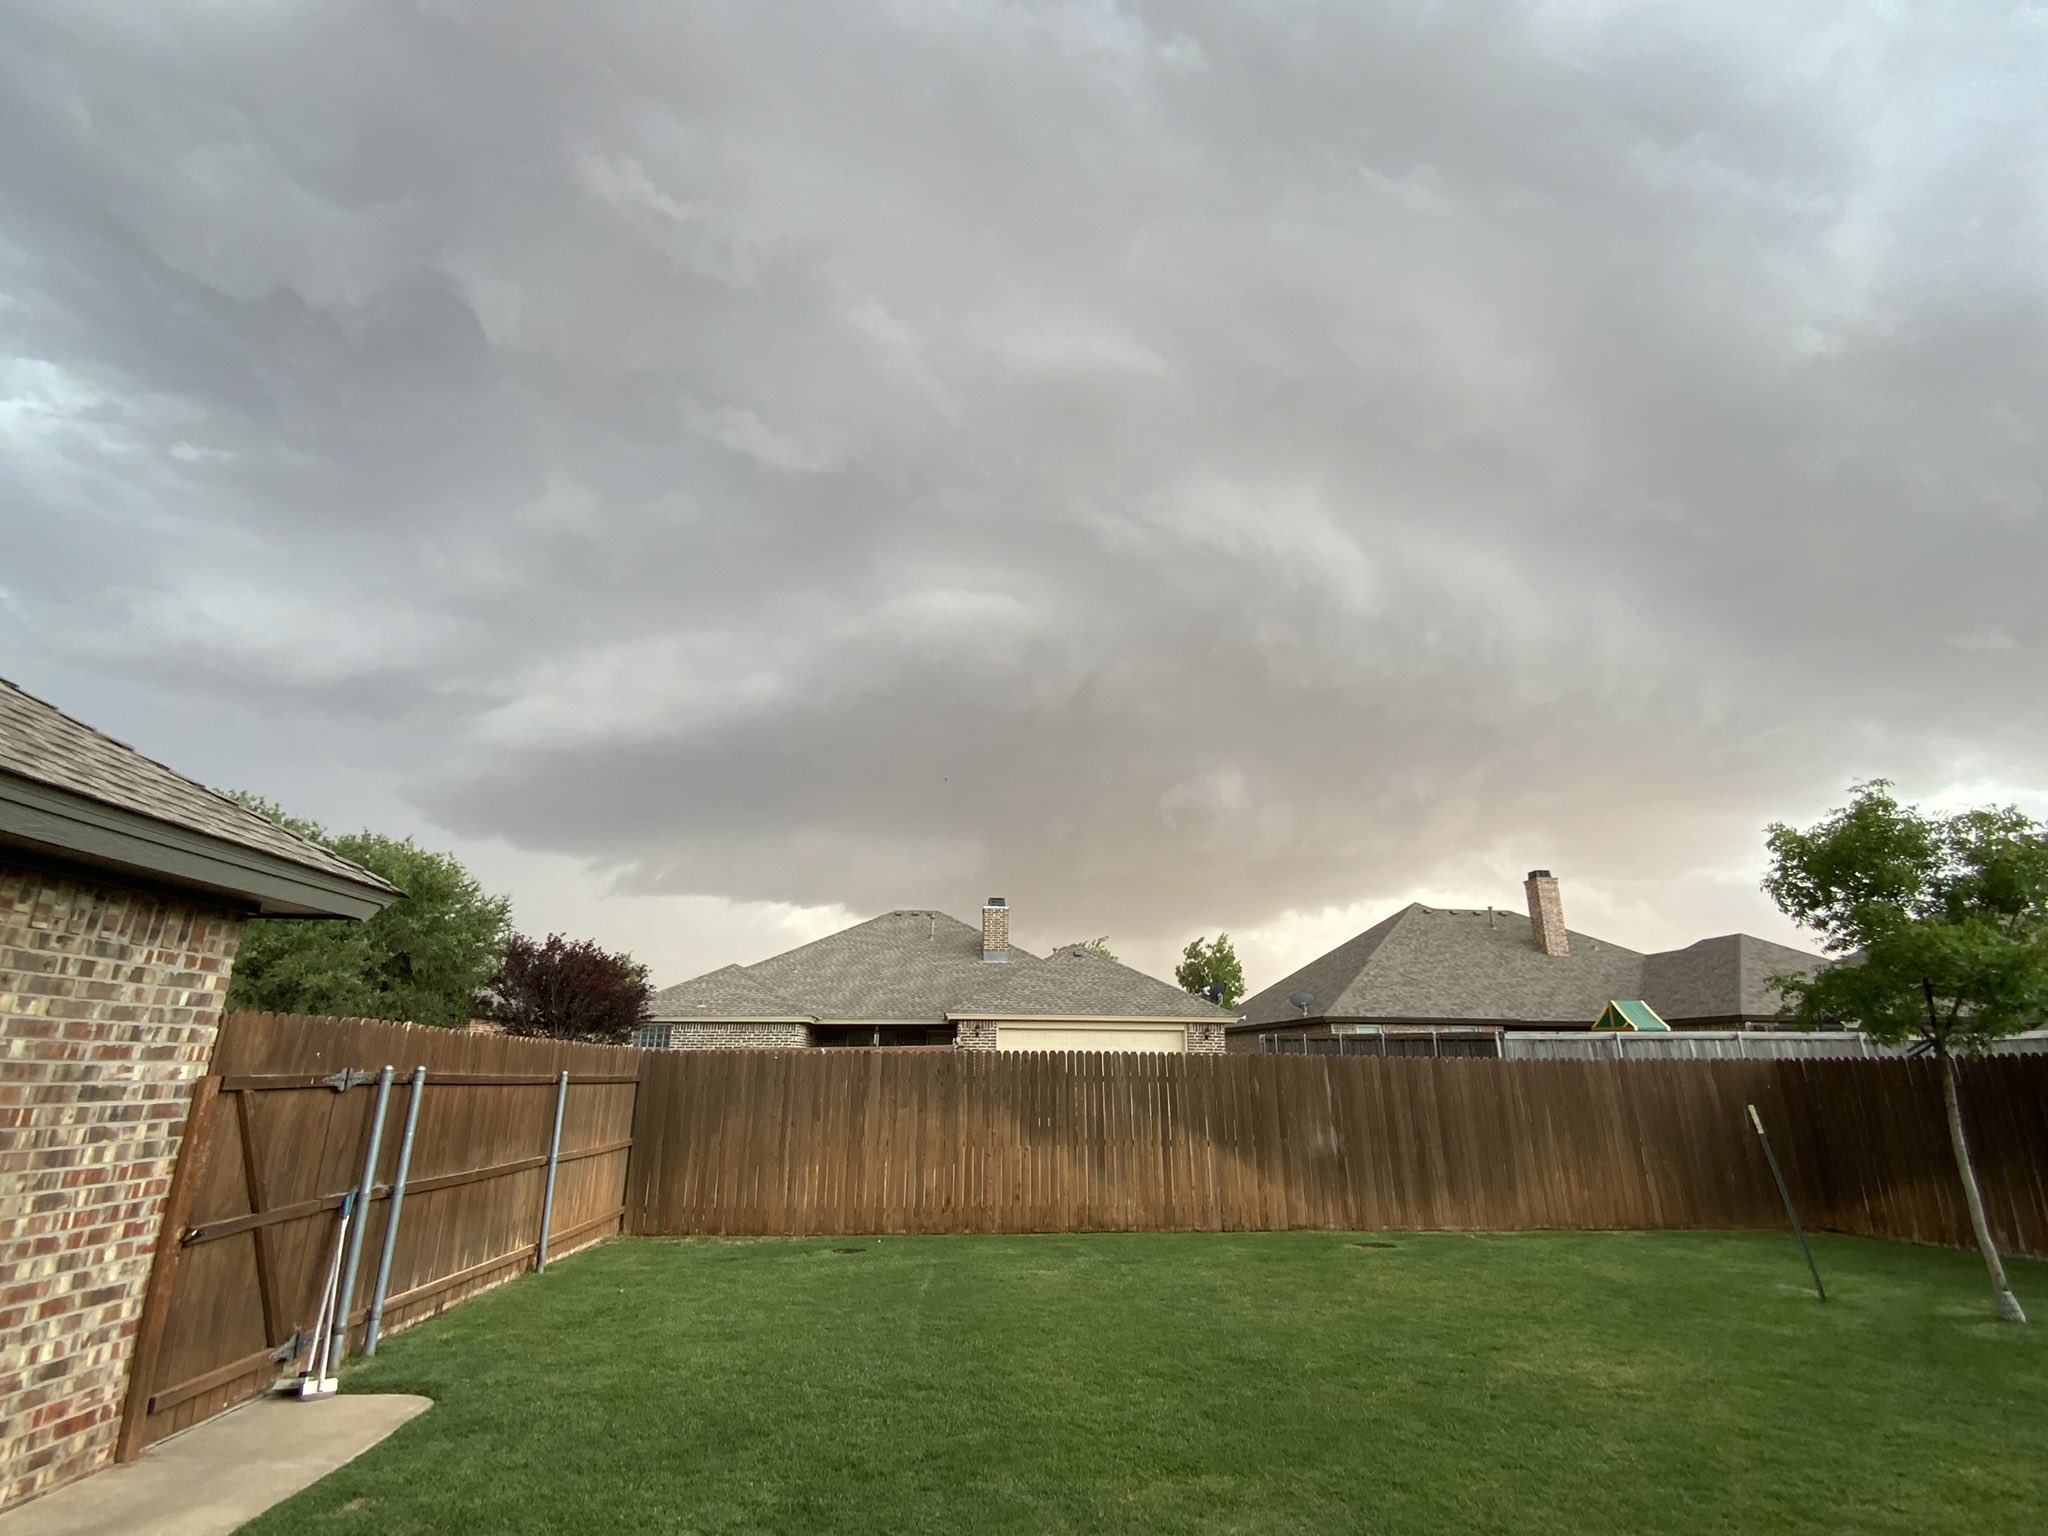 Supercell thunderstorm approaching Lubbock from the south Wednesday evening (20 May 2020). The picture was taken near Quaker Avenue and 123rd Street and is courtesy of @RBrandisCrisis.